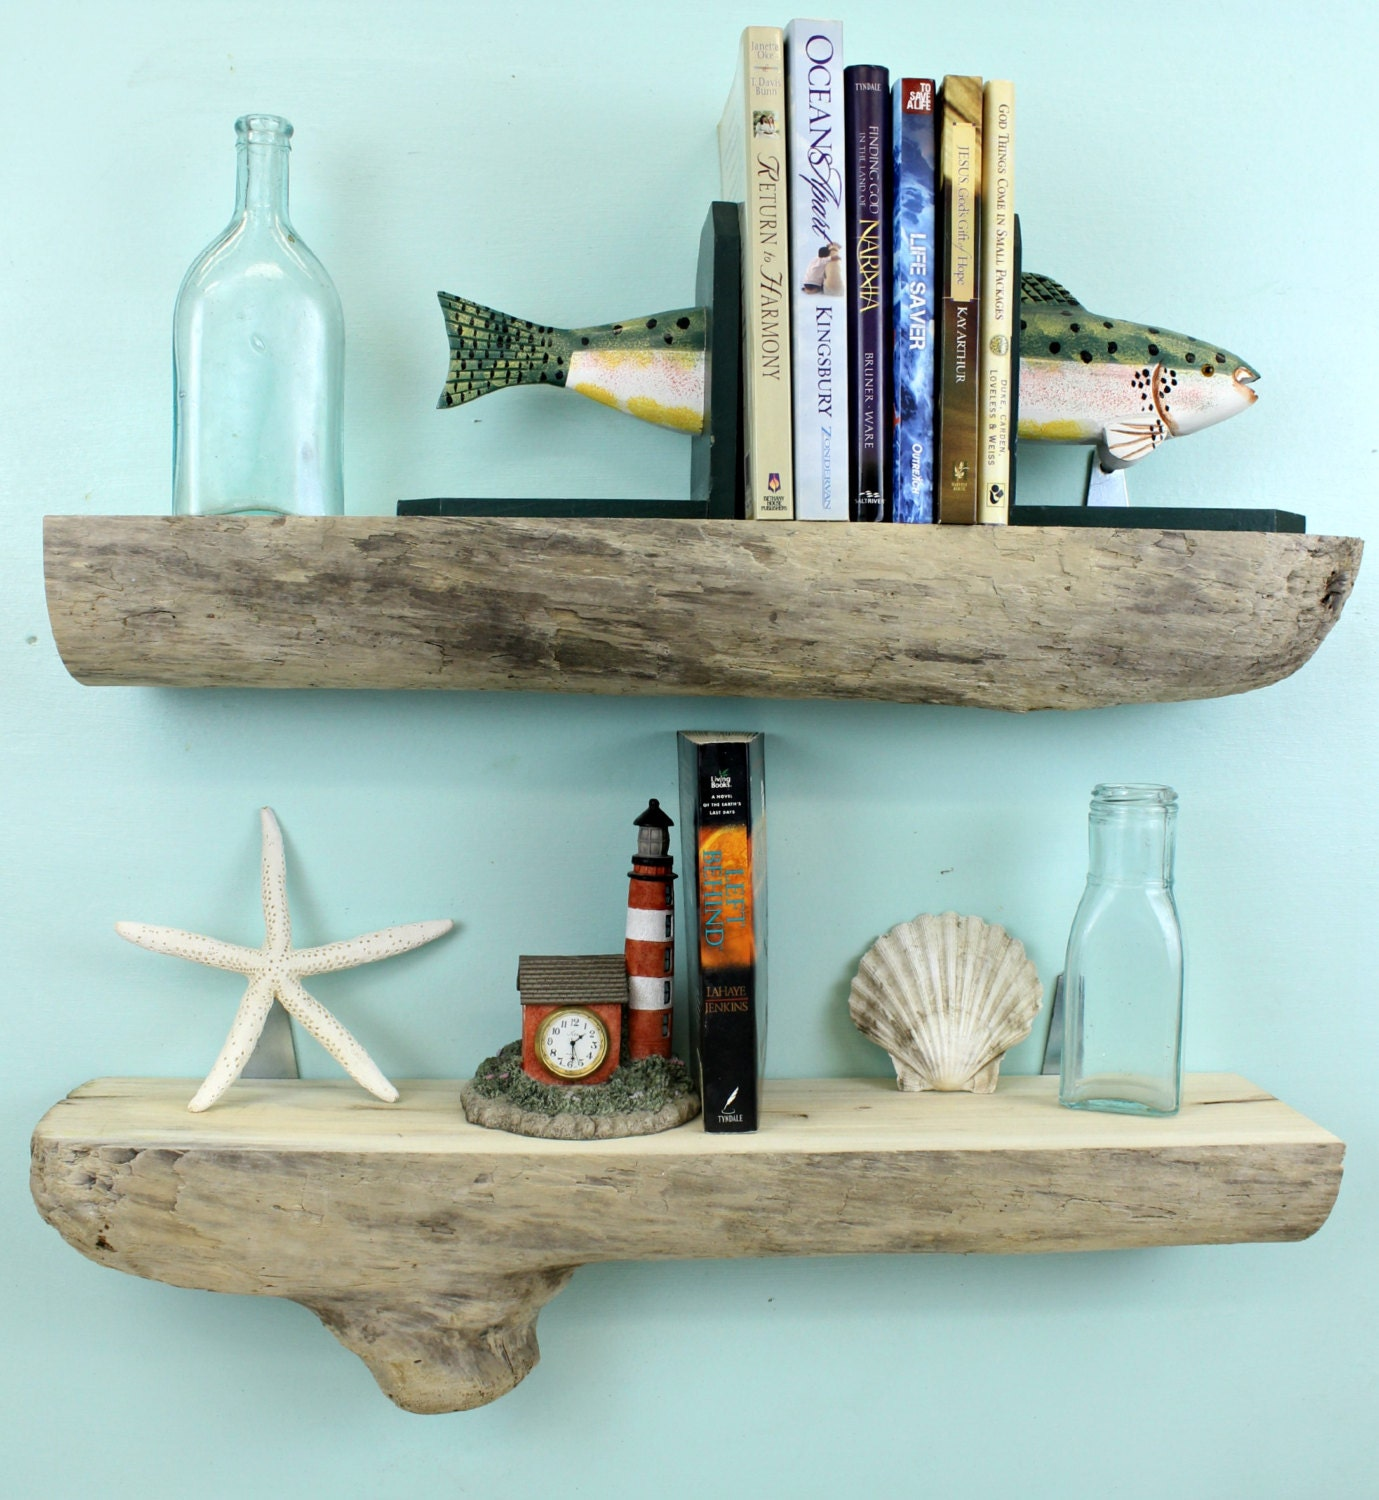 Driftwood shelves set of 2 23 1 4l by strollinthebeach on etsy for Driftwood wall shelves